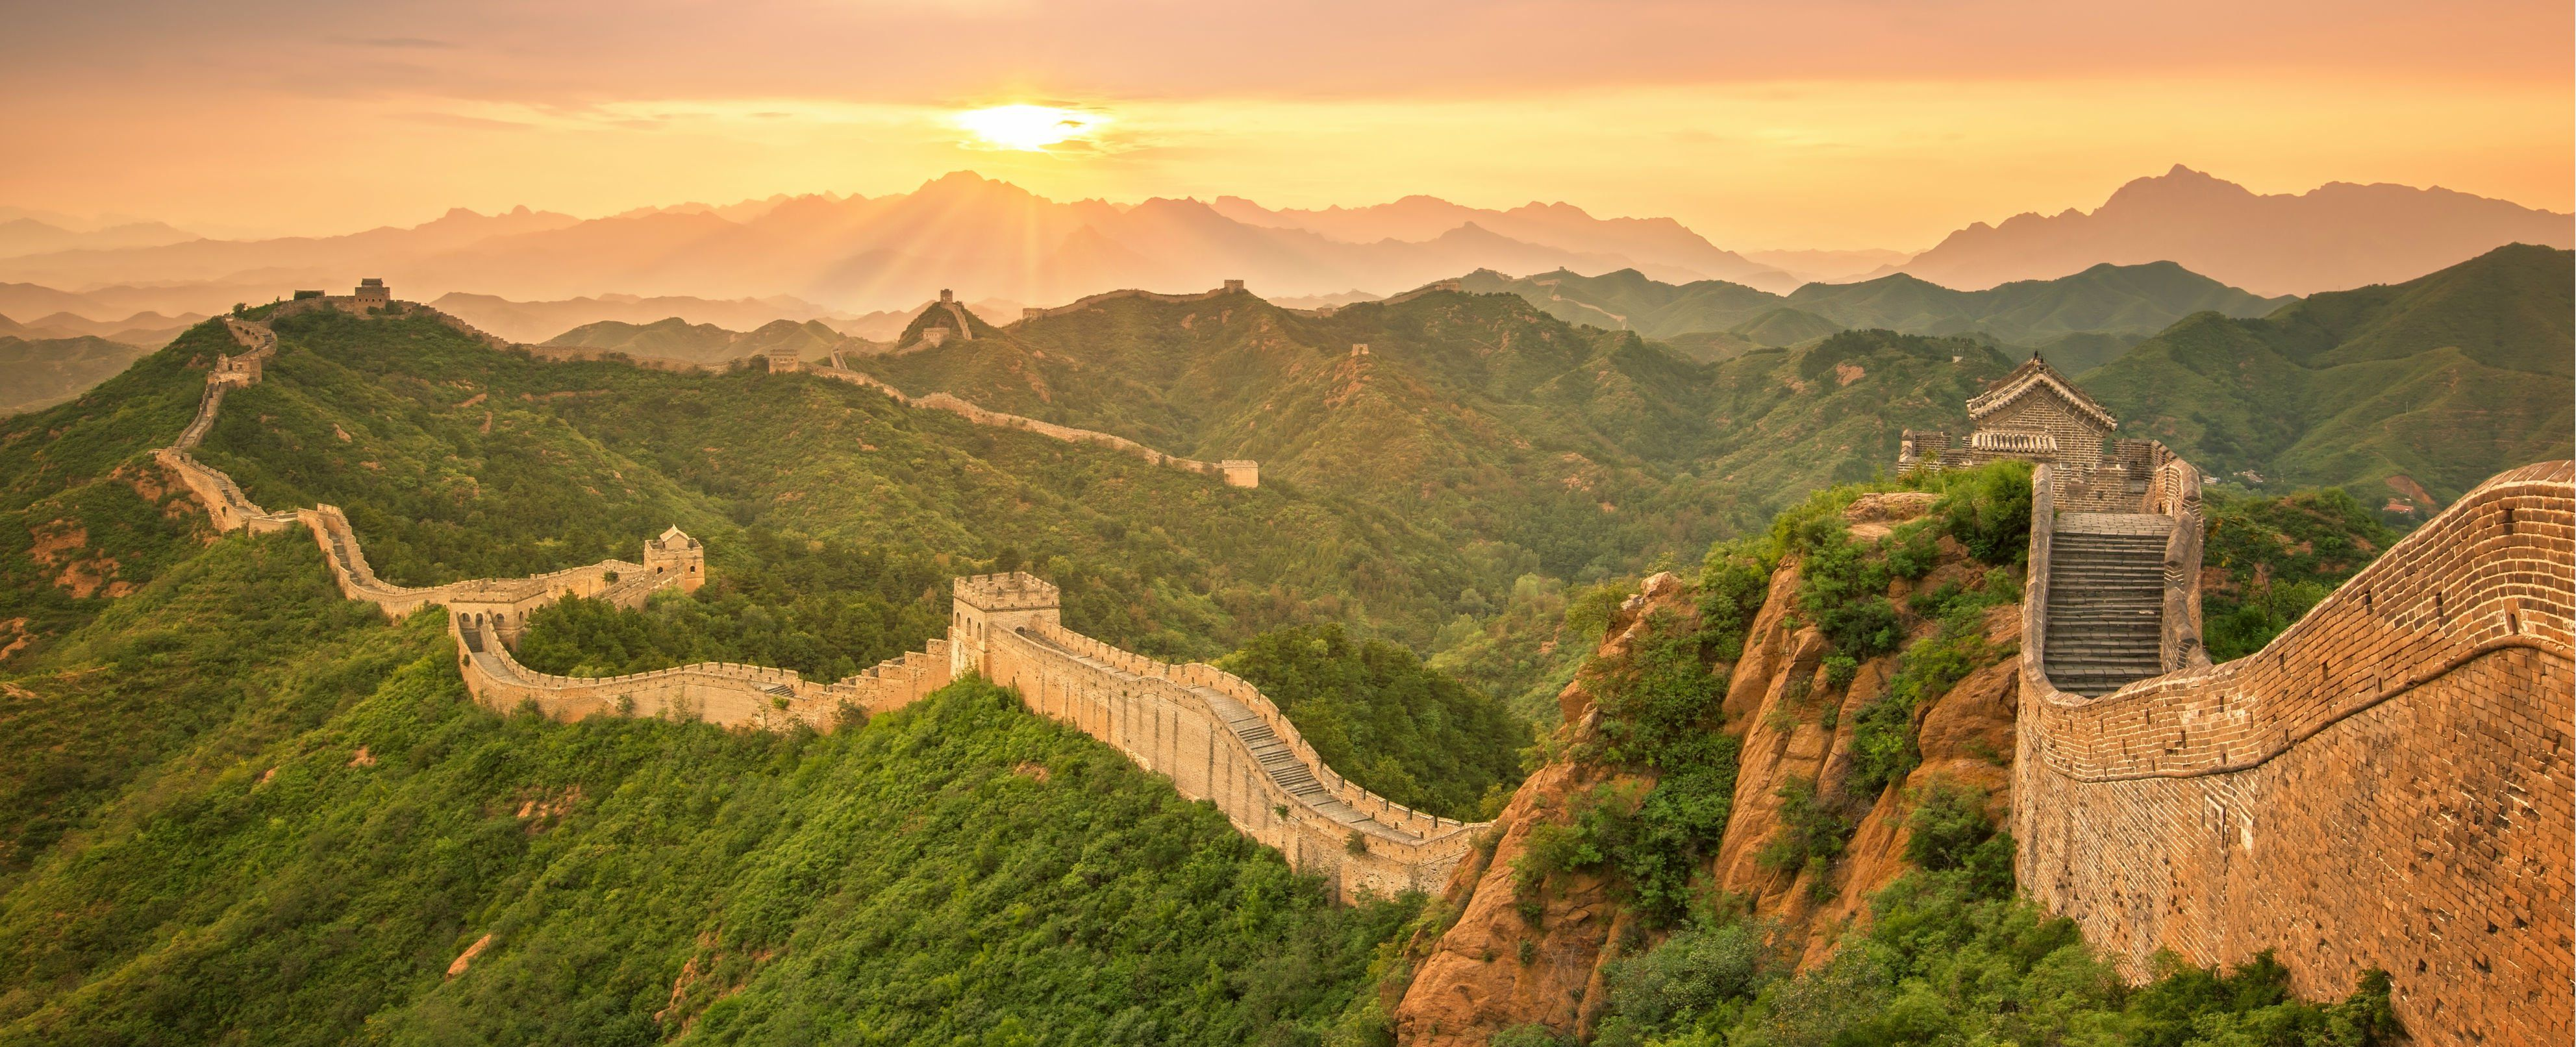 Destination Landmarks Great Wall Of China Traveloni Vacations Wonders Of The World Great Wall Of China Tour Packages